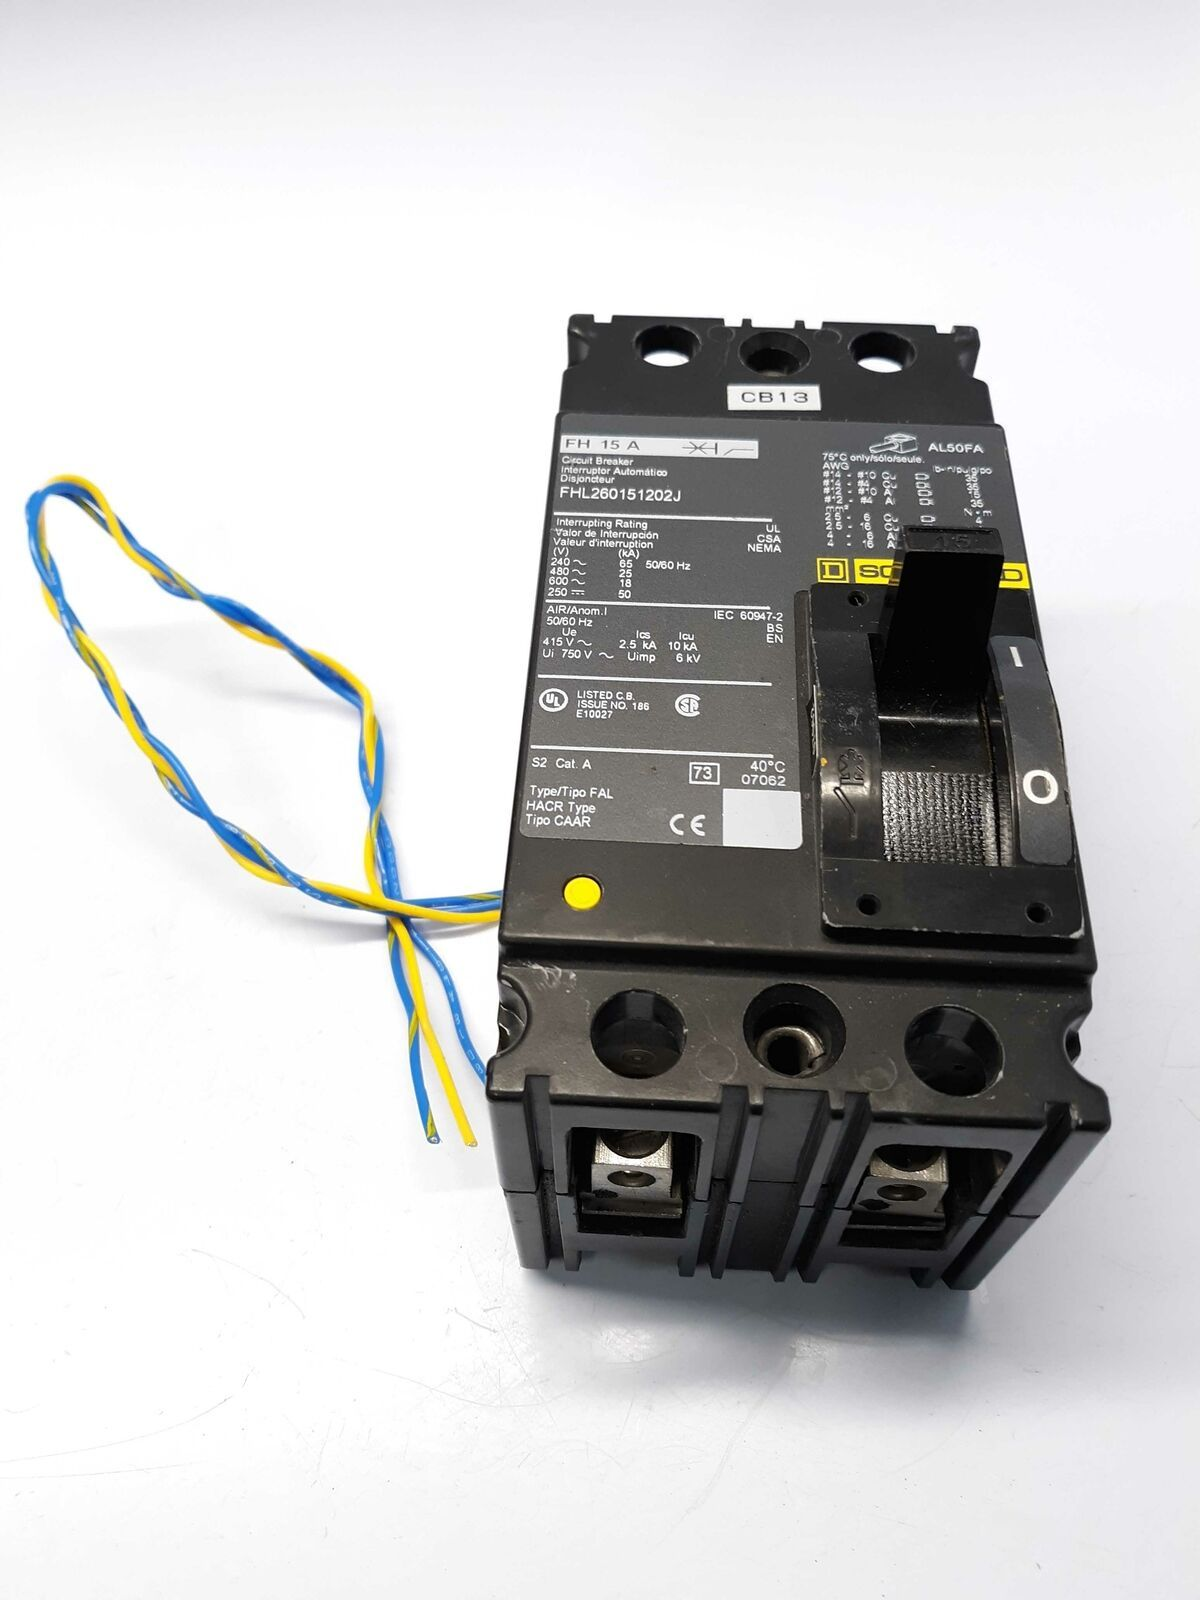 Primary image for Fuji FHL260151202J Circuit Breaker / Aux Switch